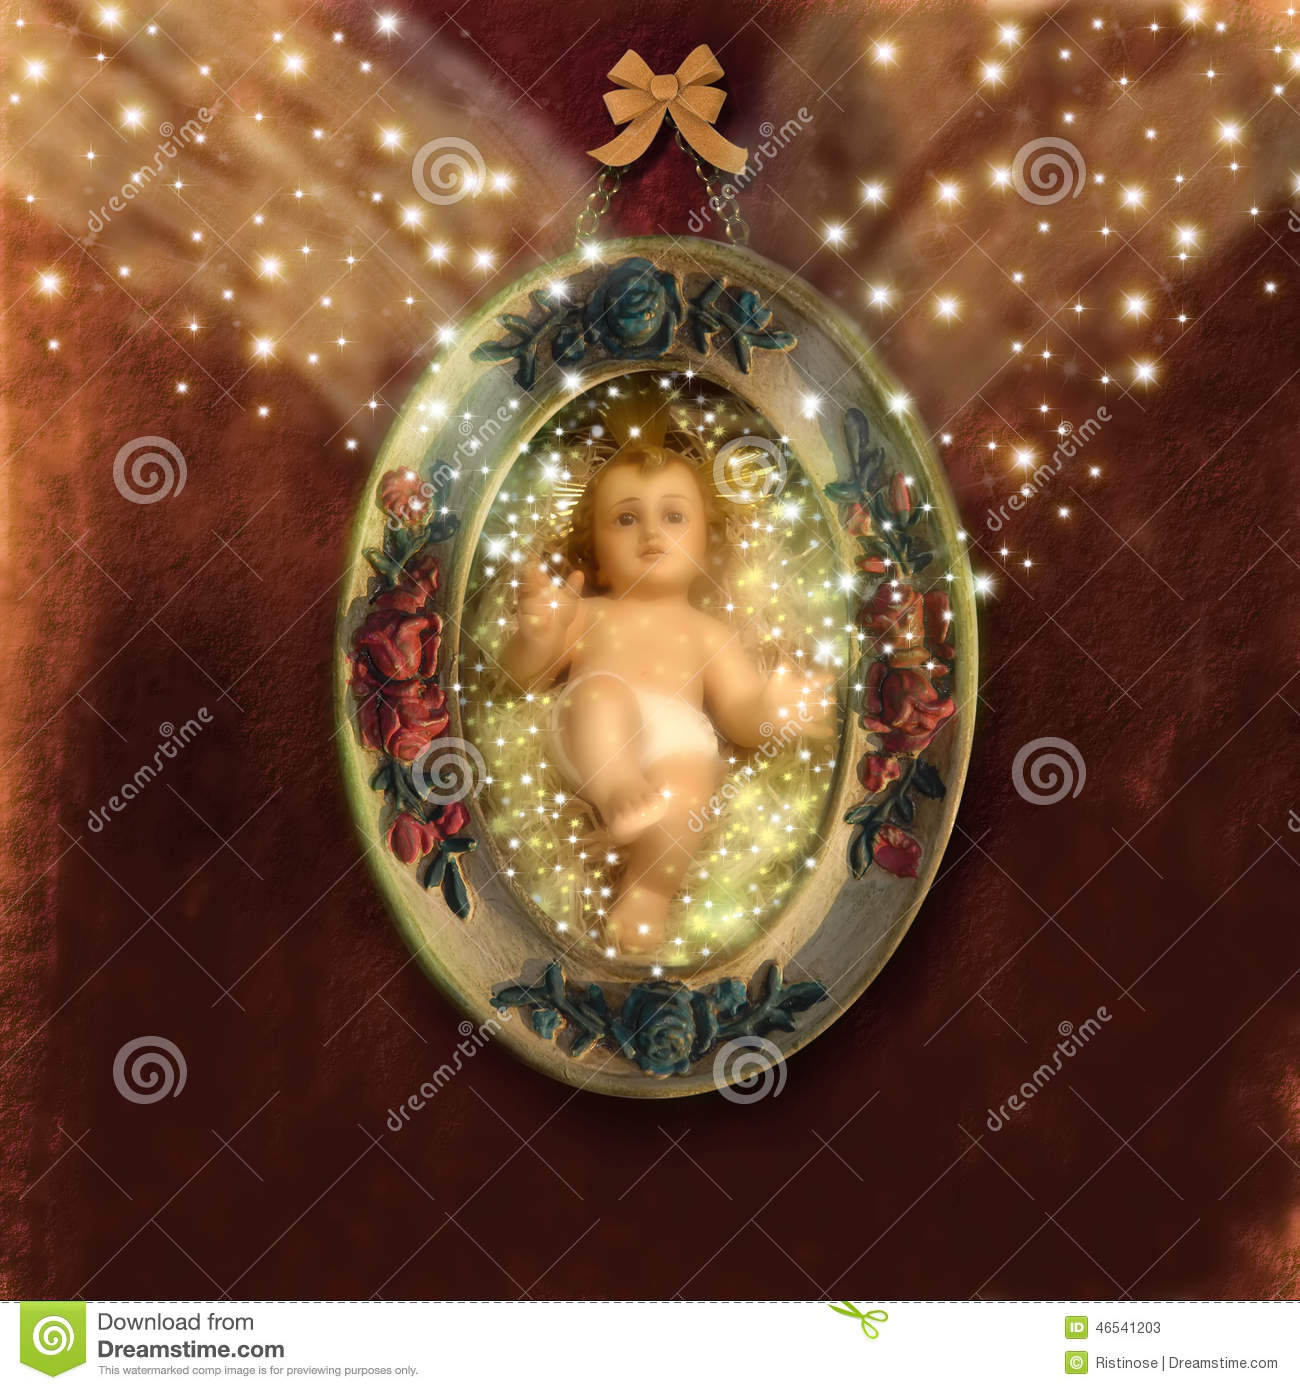 Baby Jesus Christmas Greeting Card Stock Image - Image of retro ...